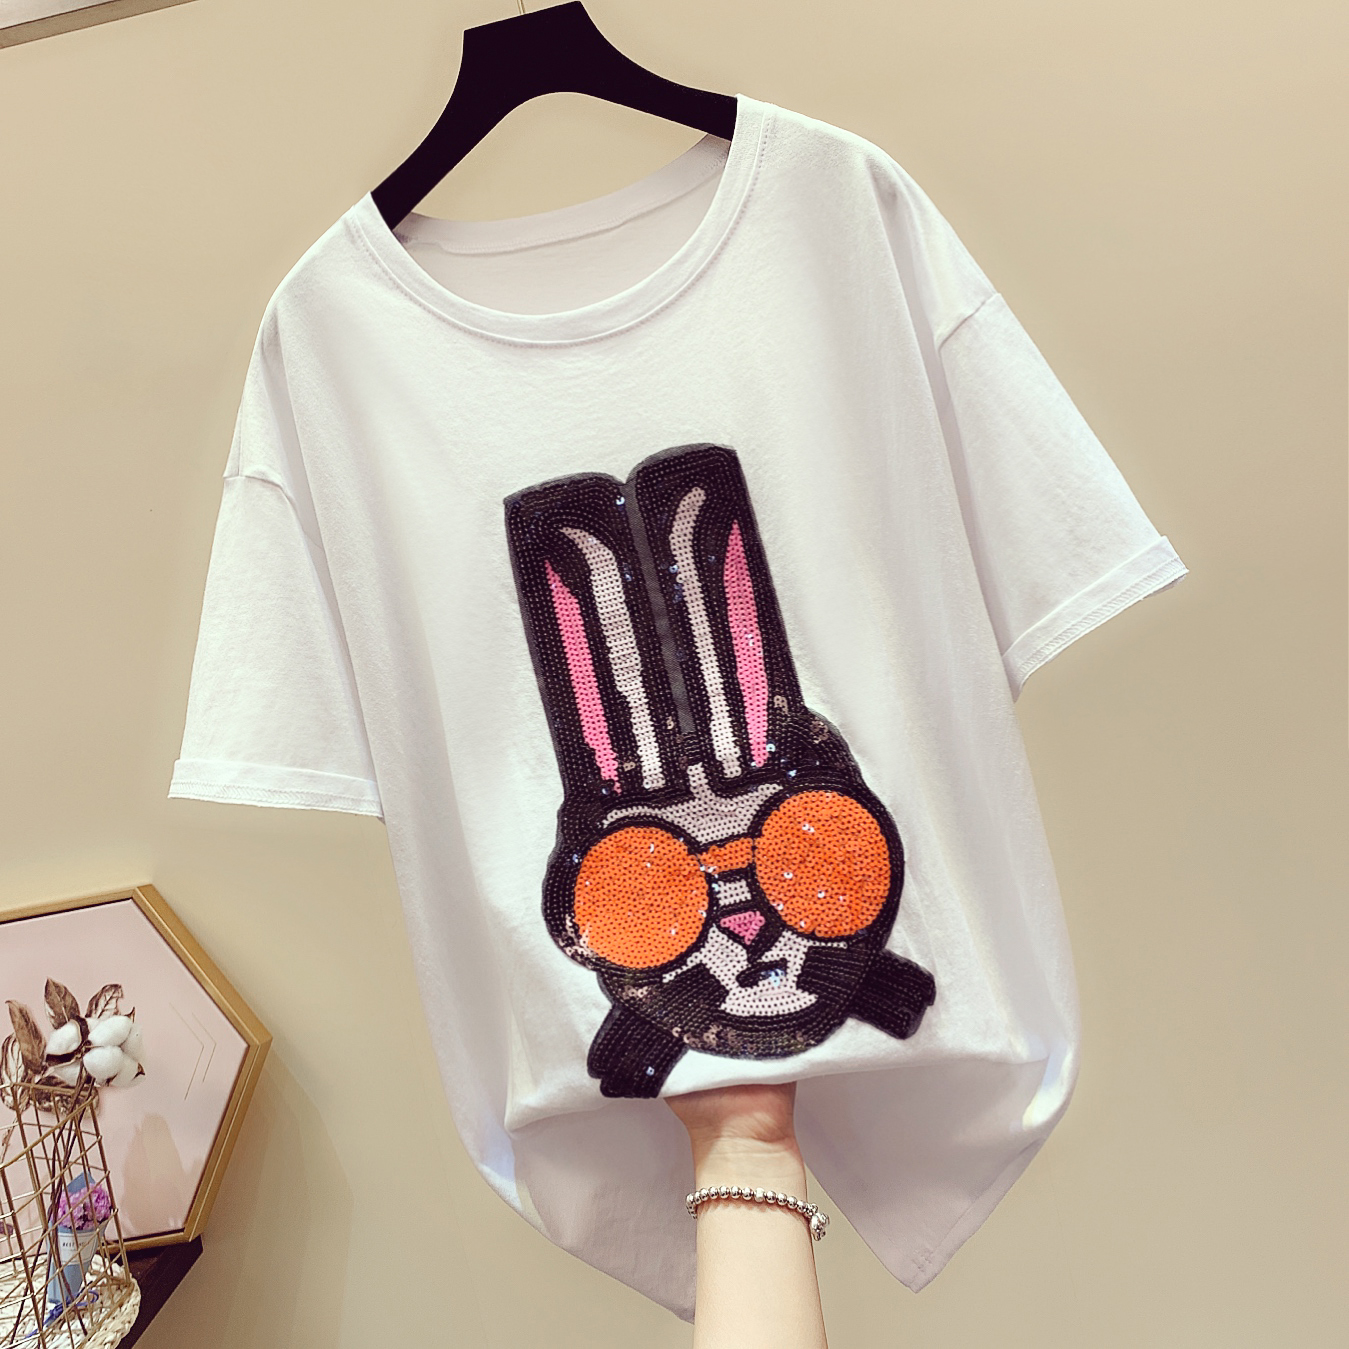 2019 Summer New Fashion Cartoon Pattern Tshirts Womens Tee Sequins Loose Short-sleeved T-shirts Woman's T-shirt Students Tees Price $26.88